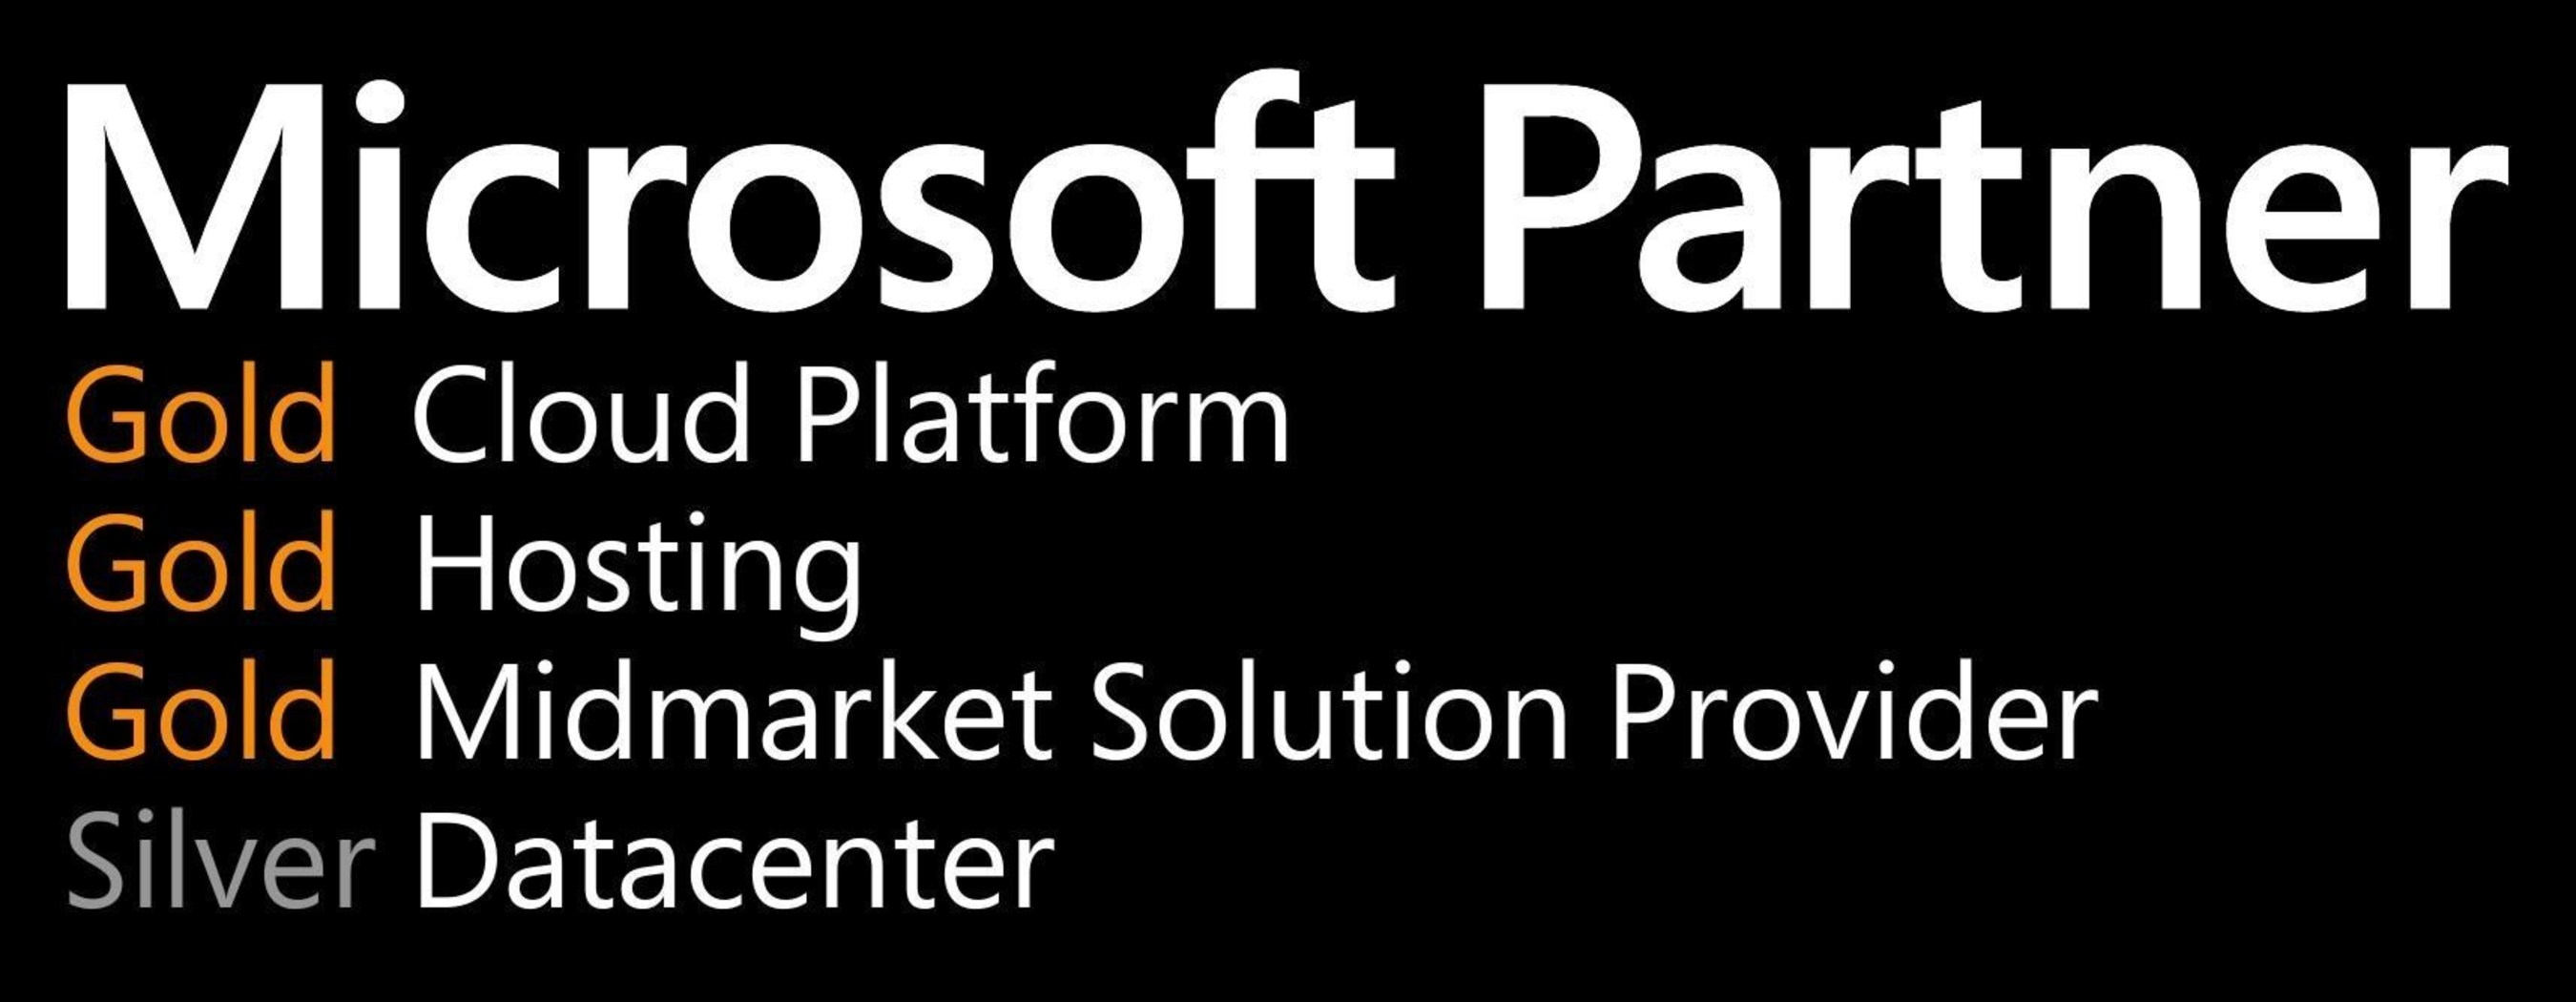 The Cloud Platform Microsoft Partner competency highlights Microsoft's continuing evolution to a Cloud based company.